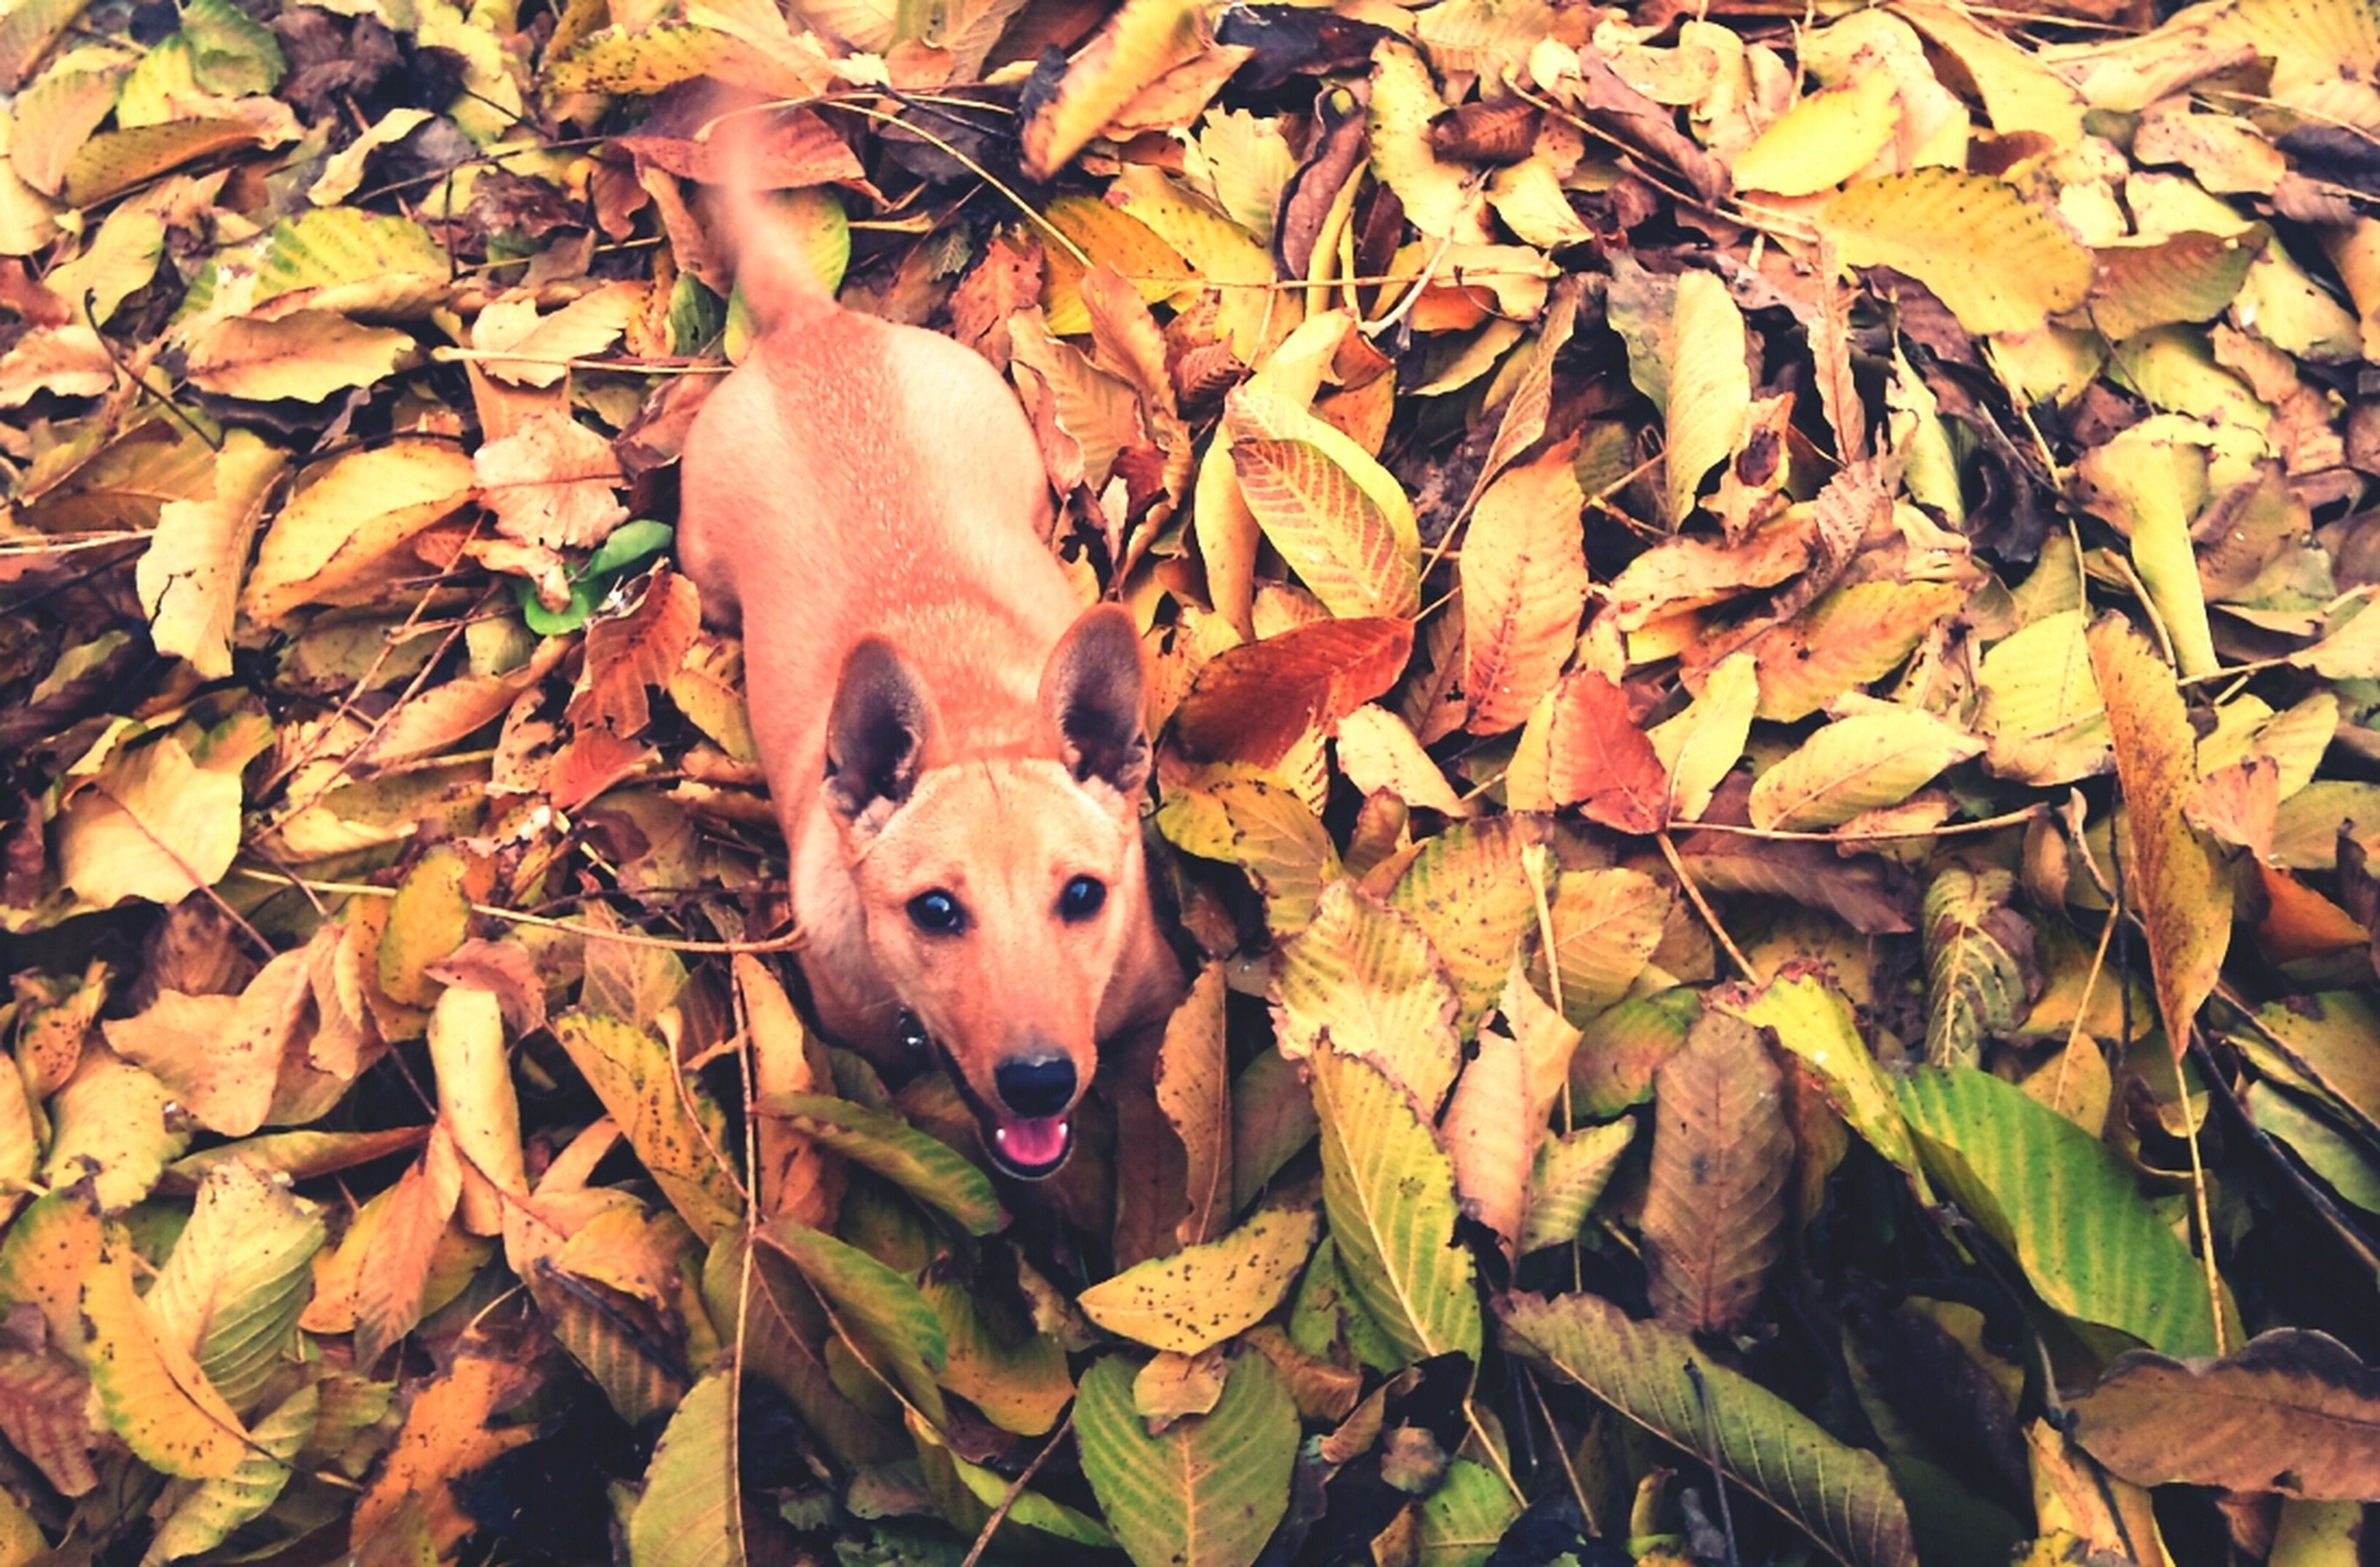 animal themes, dog, domestic animals, leaf, one animal, autumn, pets, mammal, change, high angle view, looking at camera, portrait, field, brown, leaves, day, outdoors, dry, nature, season